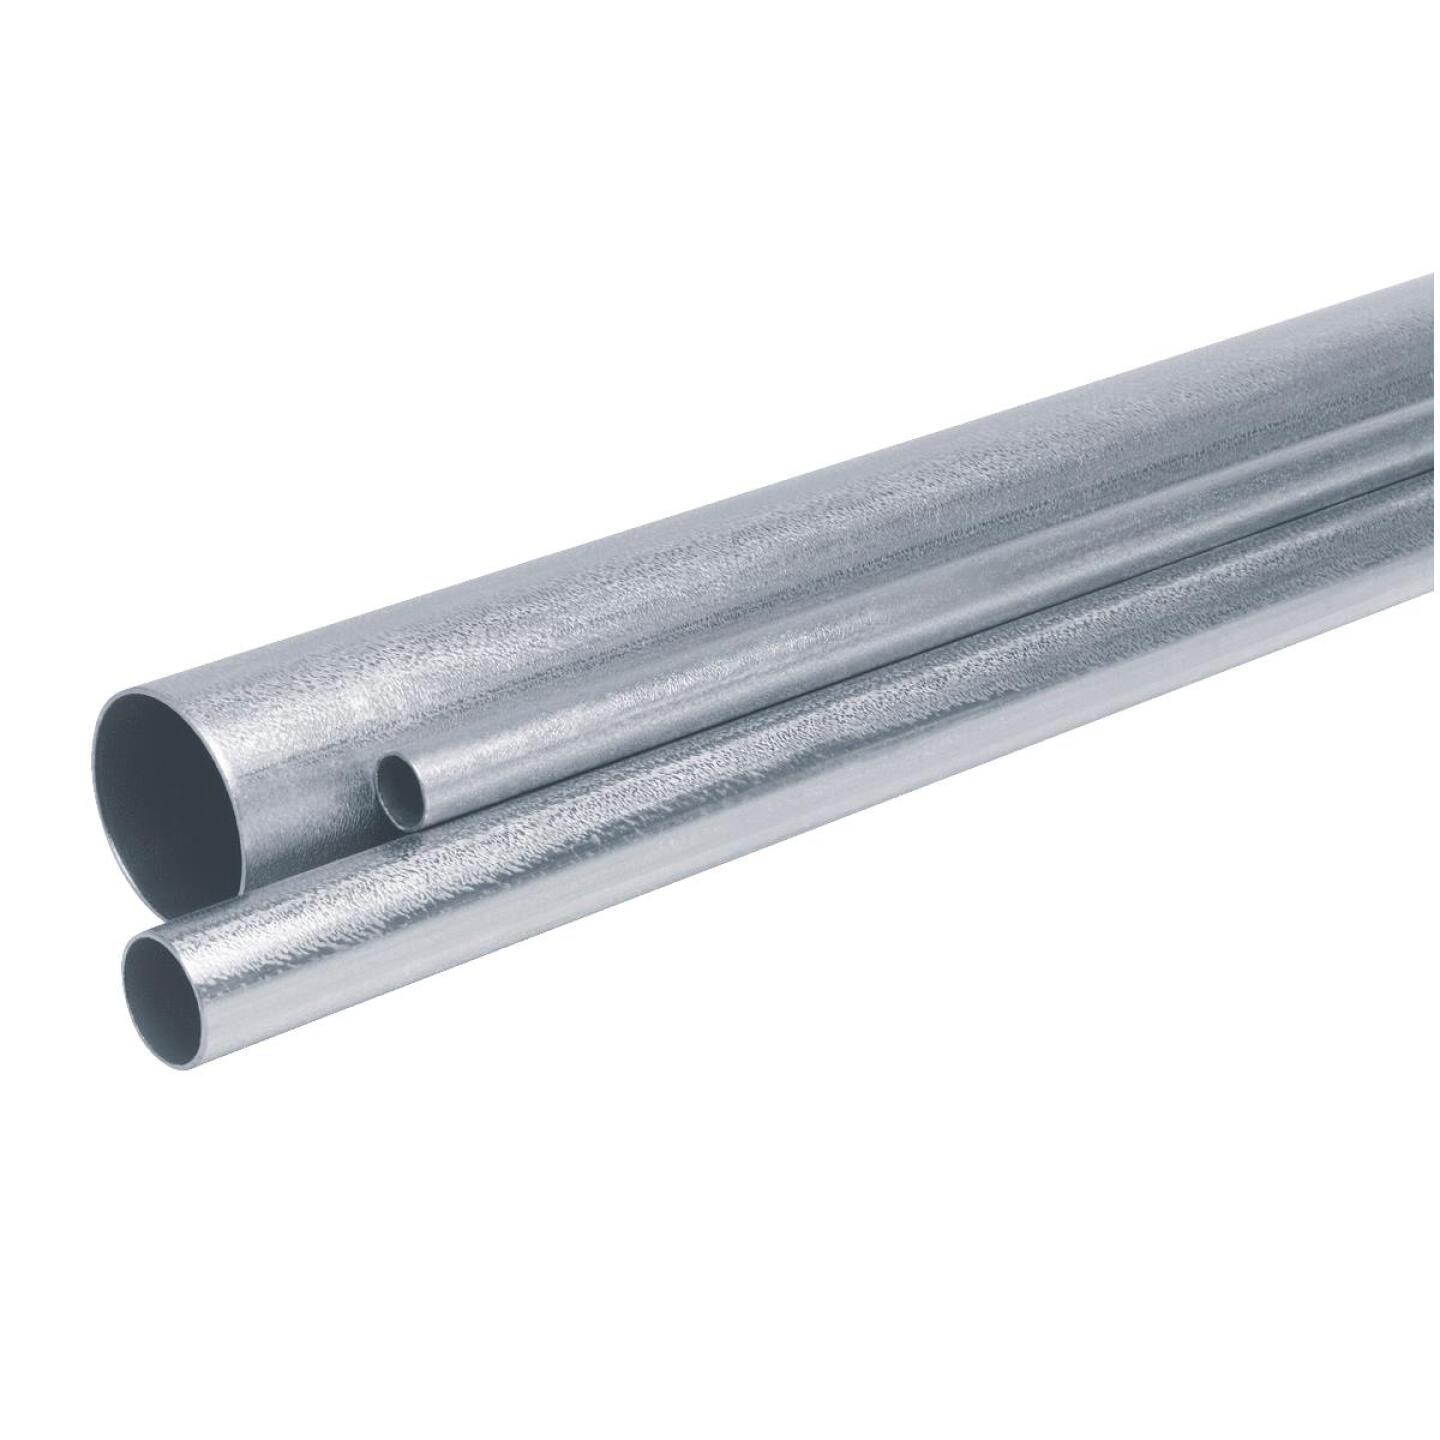 Allied Tube 3/4 In. x 10 Ft. EMT Metal Conduit Image 1